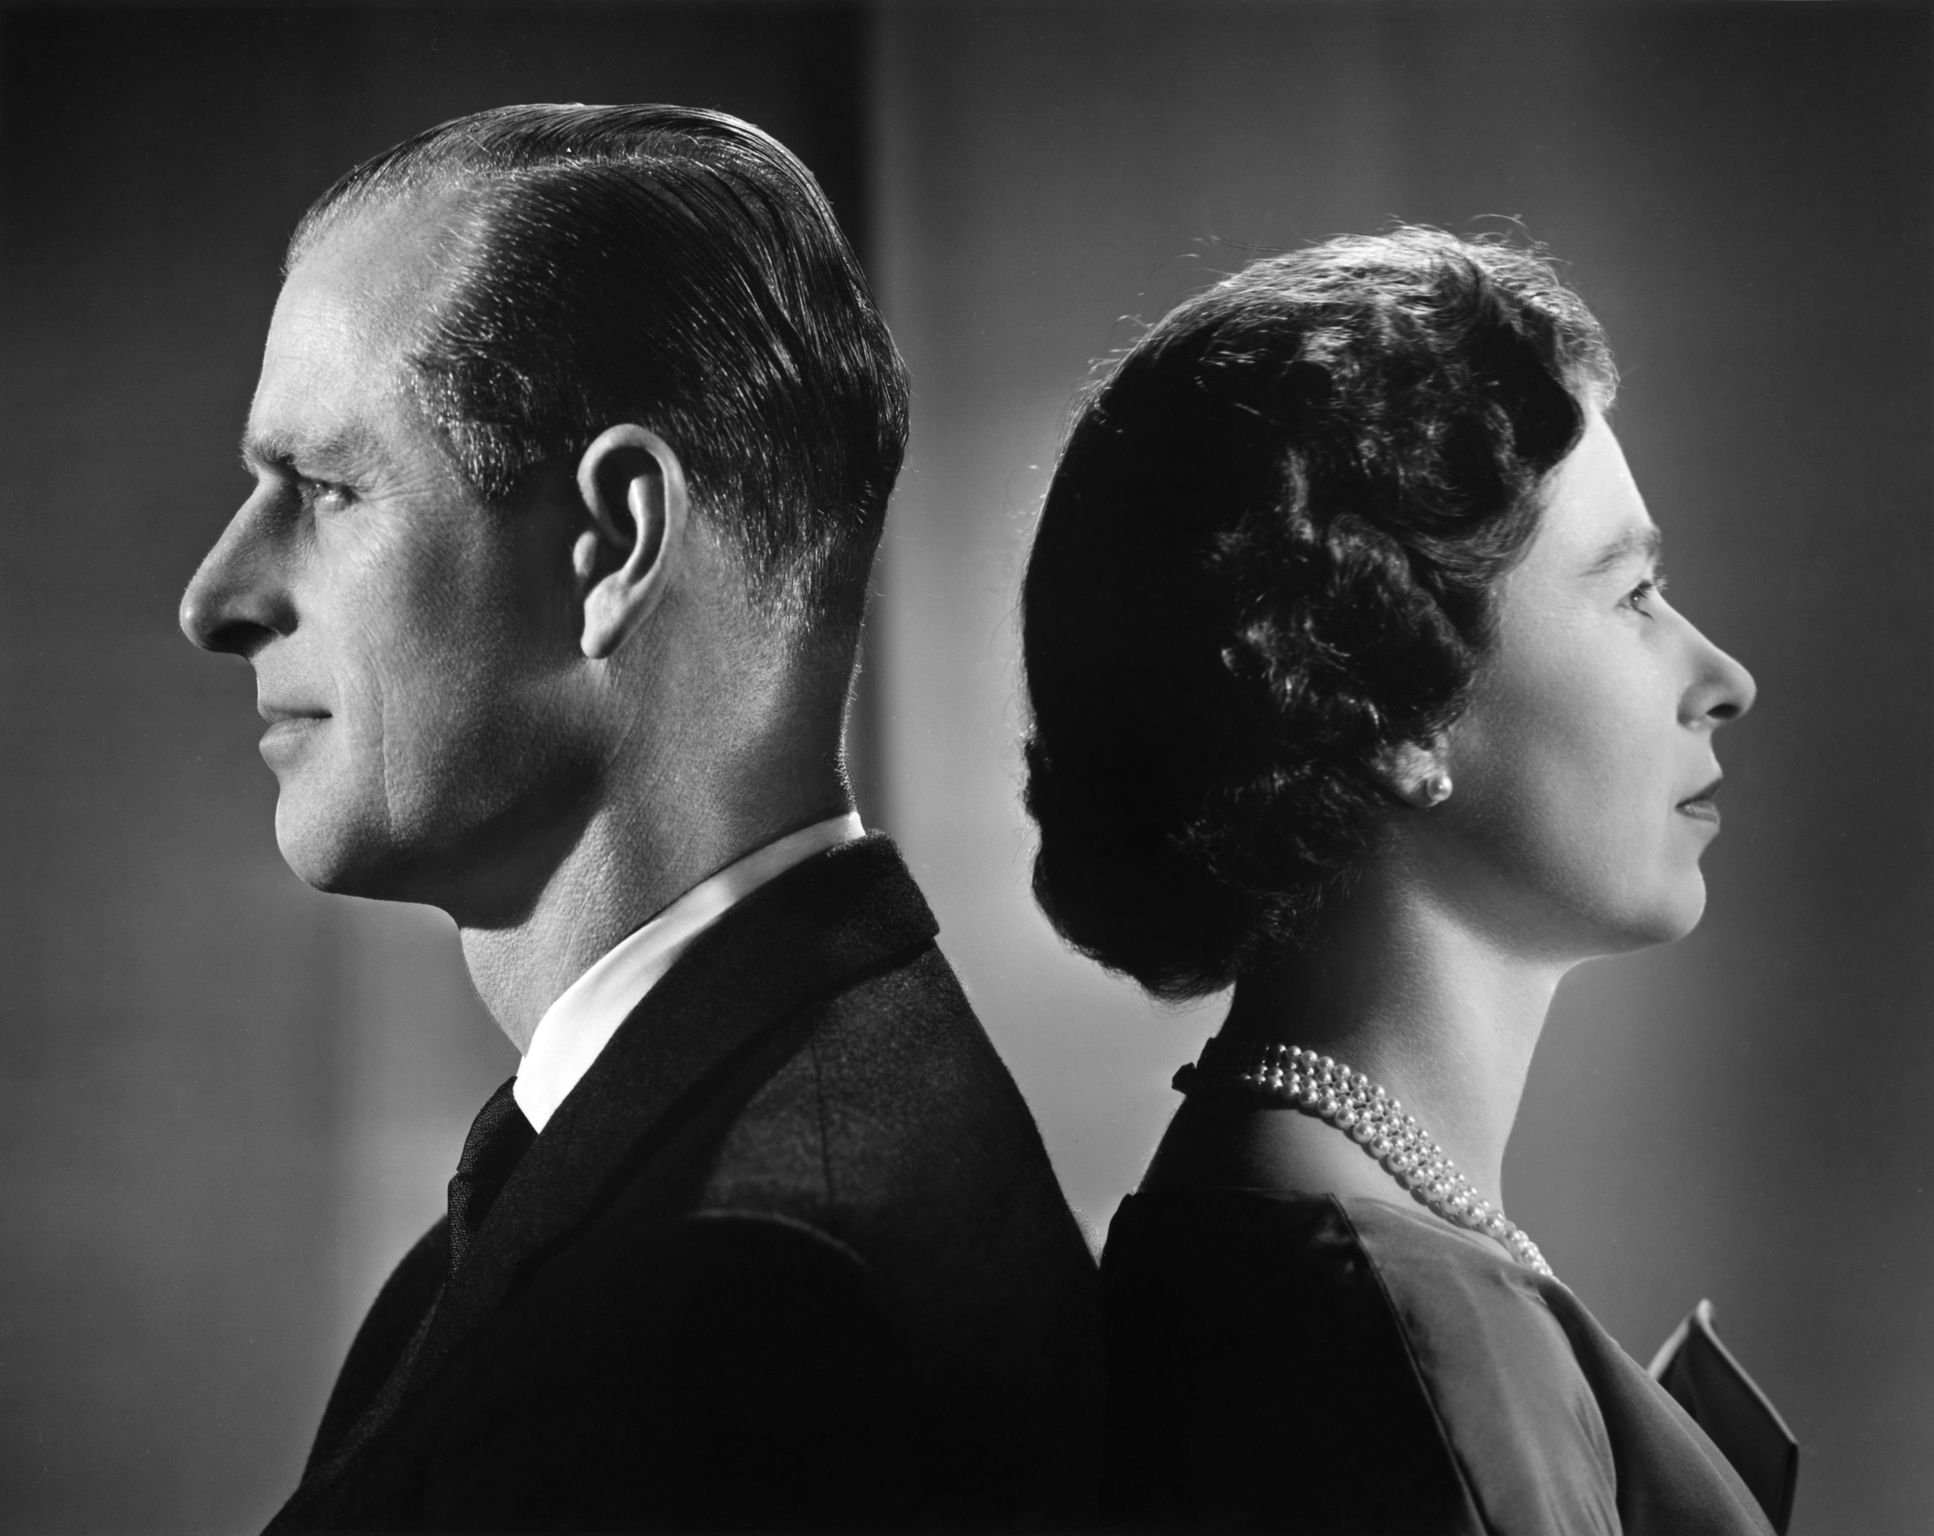 Queen Elizabeth II and Prince Philip, Duke of Edinburgh posing for a portrait in Buckingham Palace in1958 in London, England | Photo: Getty Images